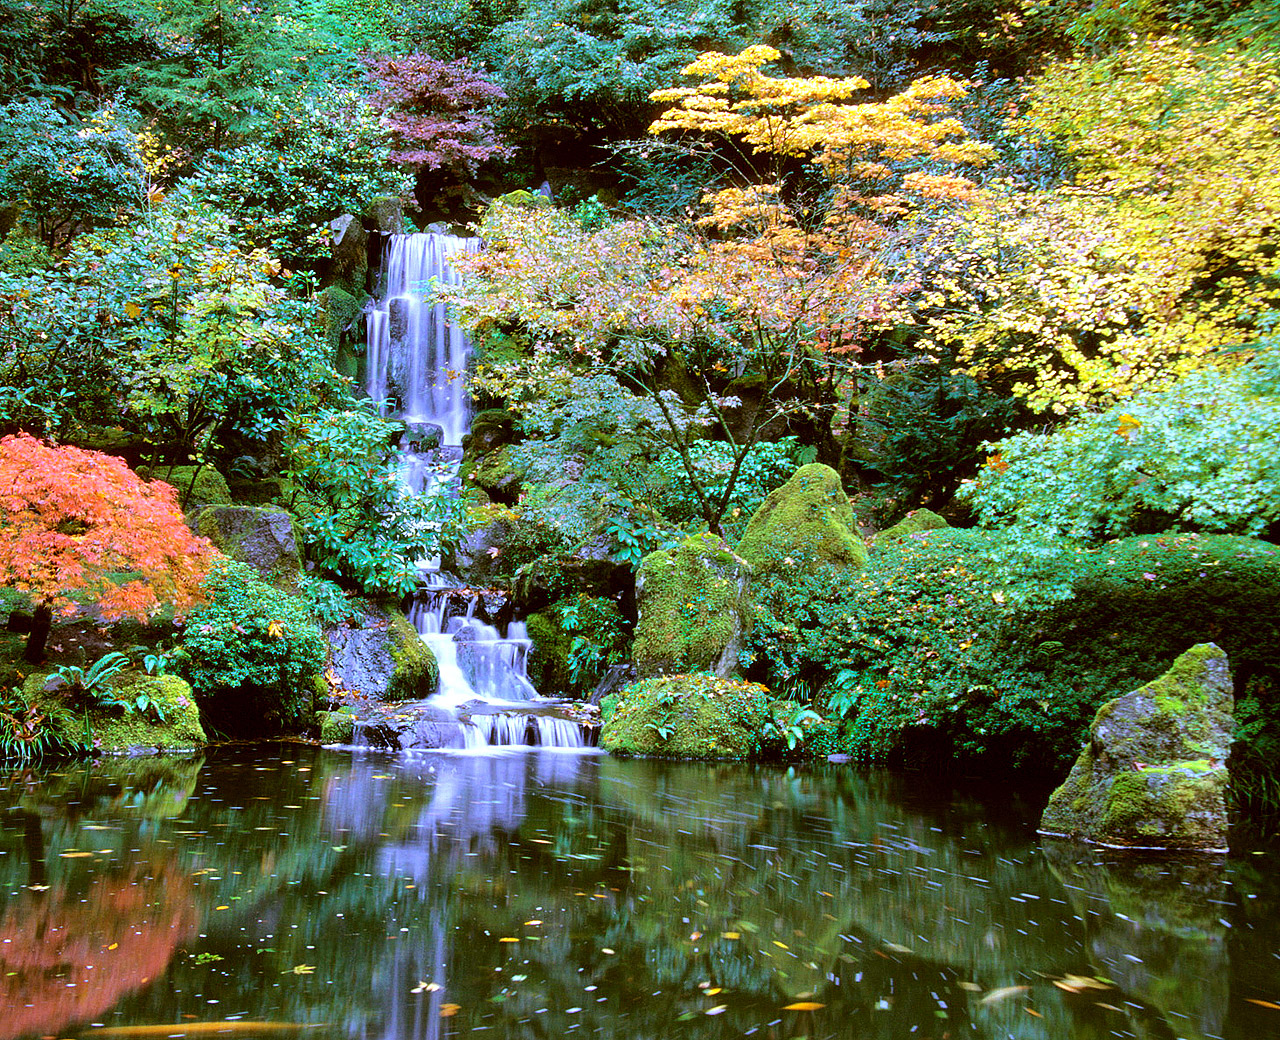 AA_Parks_JapaneseGarden_14_courtesy_JapaneseGarden_DavidMCobb1.jpg